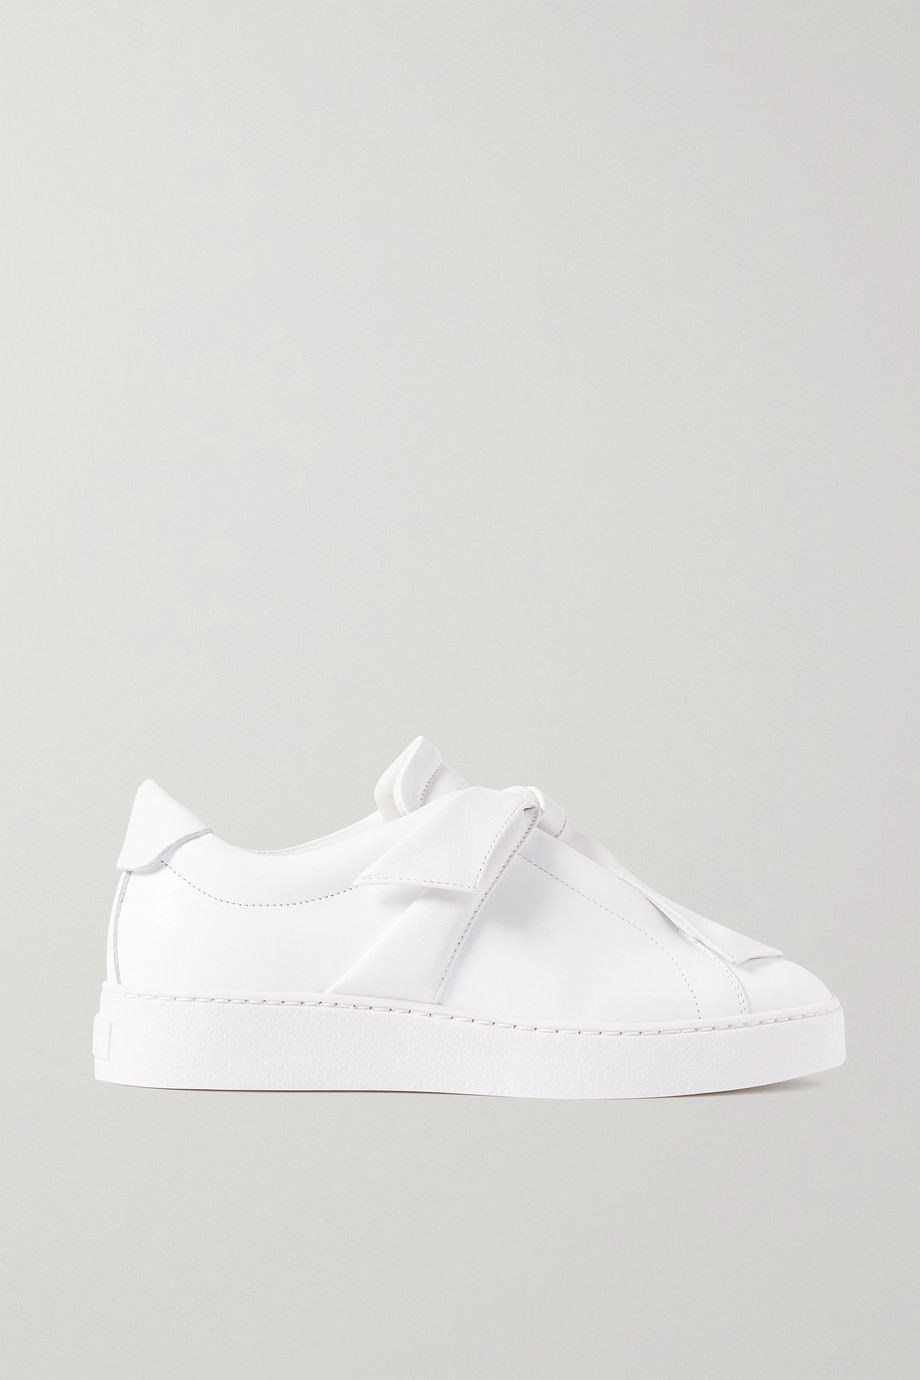 Alexandre Birman Clarita bow-embellished leather slip-on sneakers